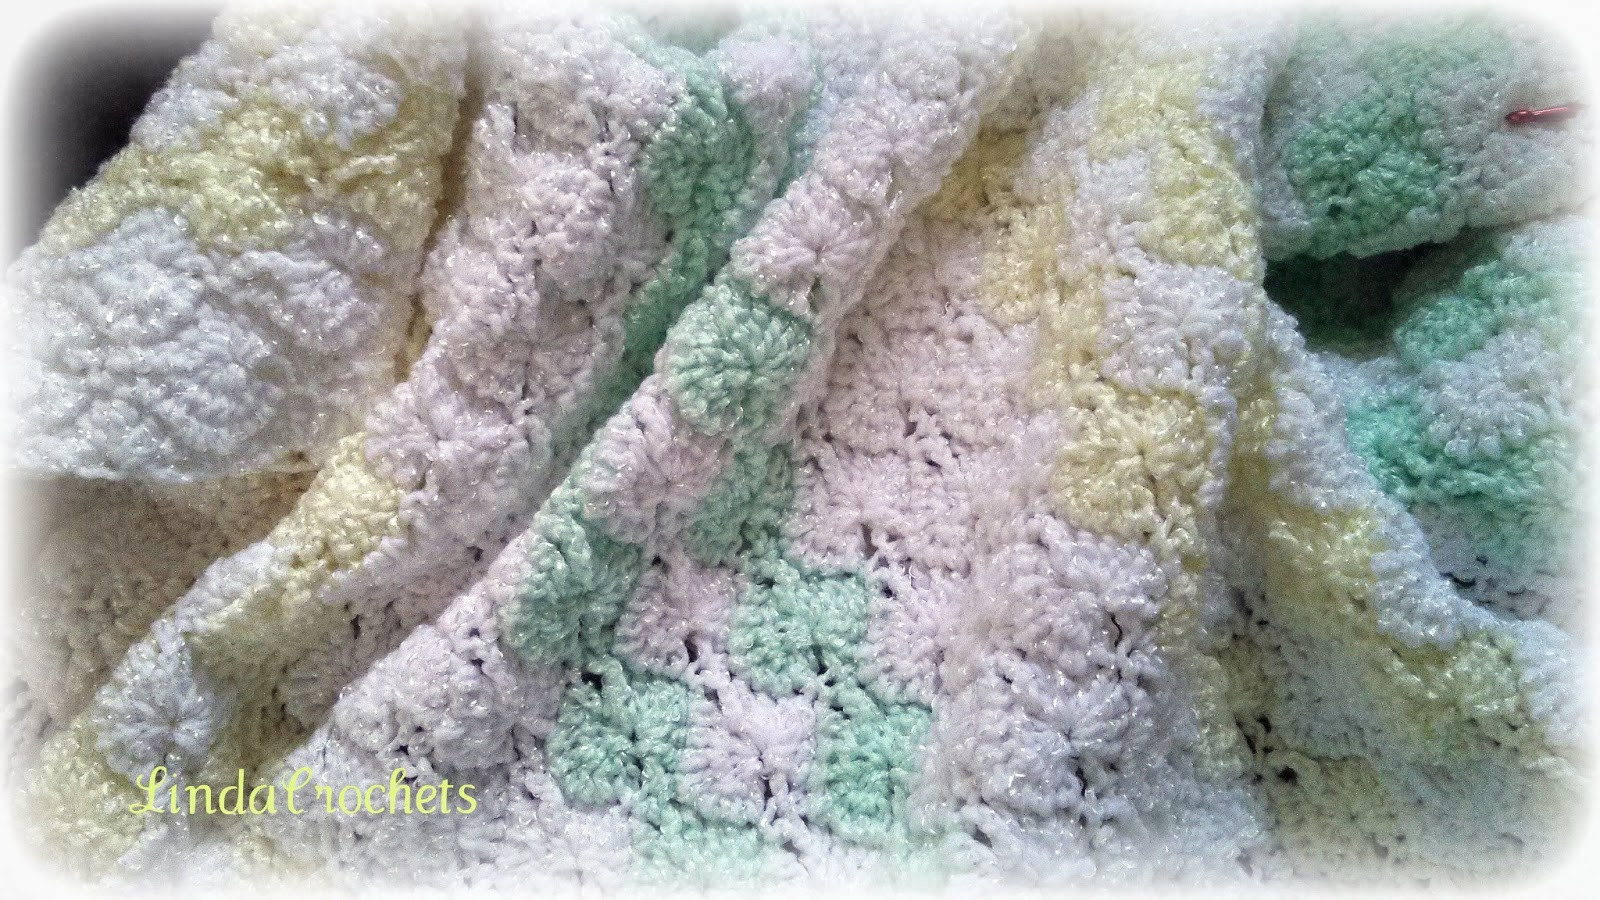 New Linda Crochets Double Shell Stitch Baby Blanket Shell Stitch Baby Blanket Of Brilliant 49 Images Shell Stitch Baby Blanket